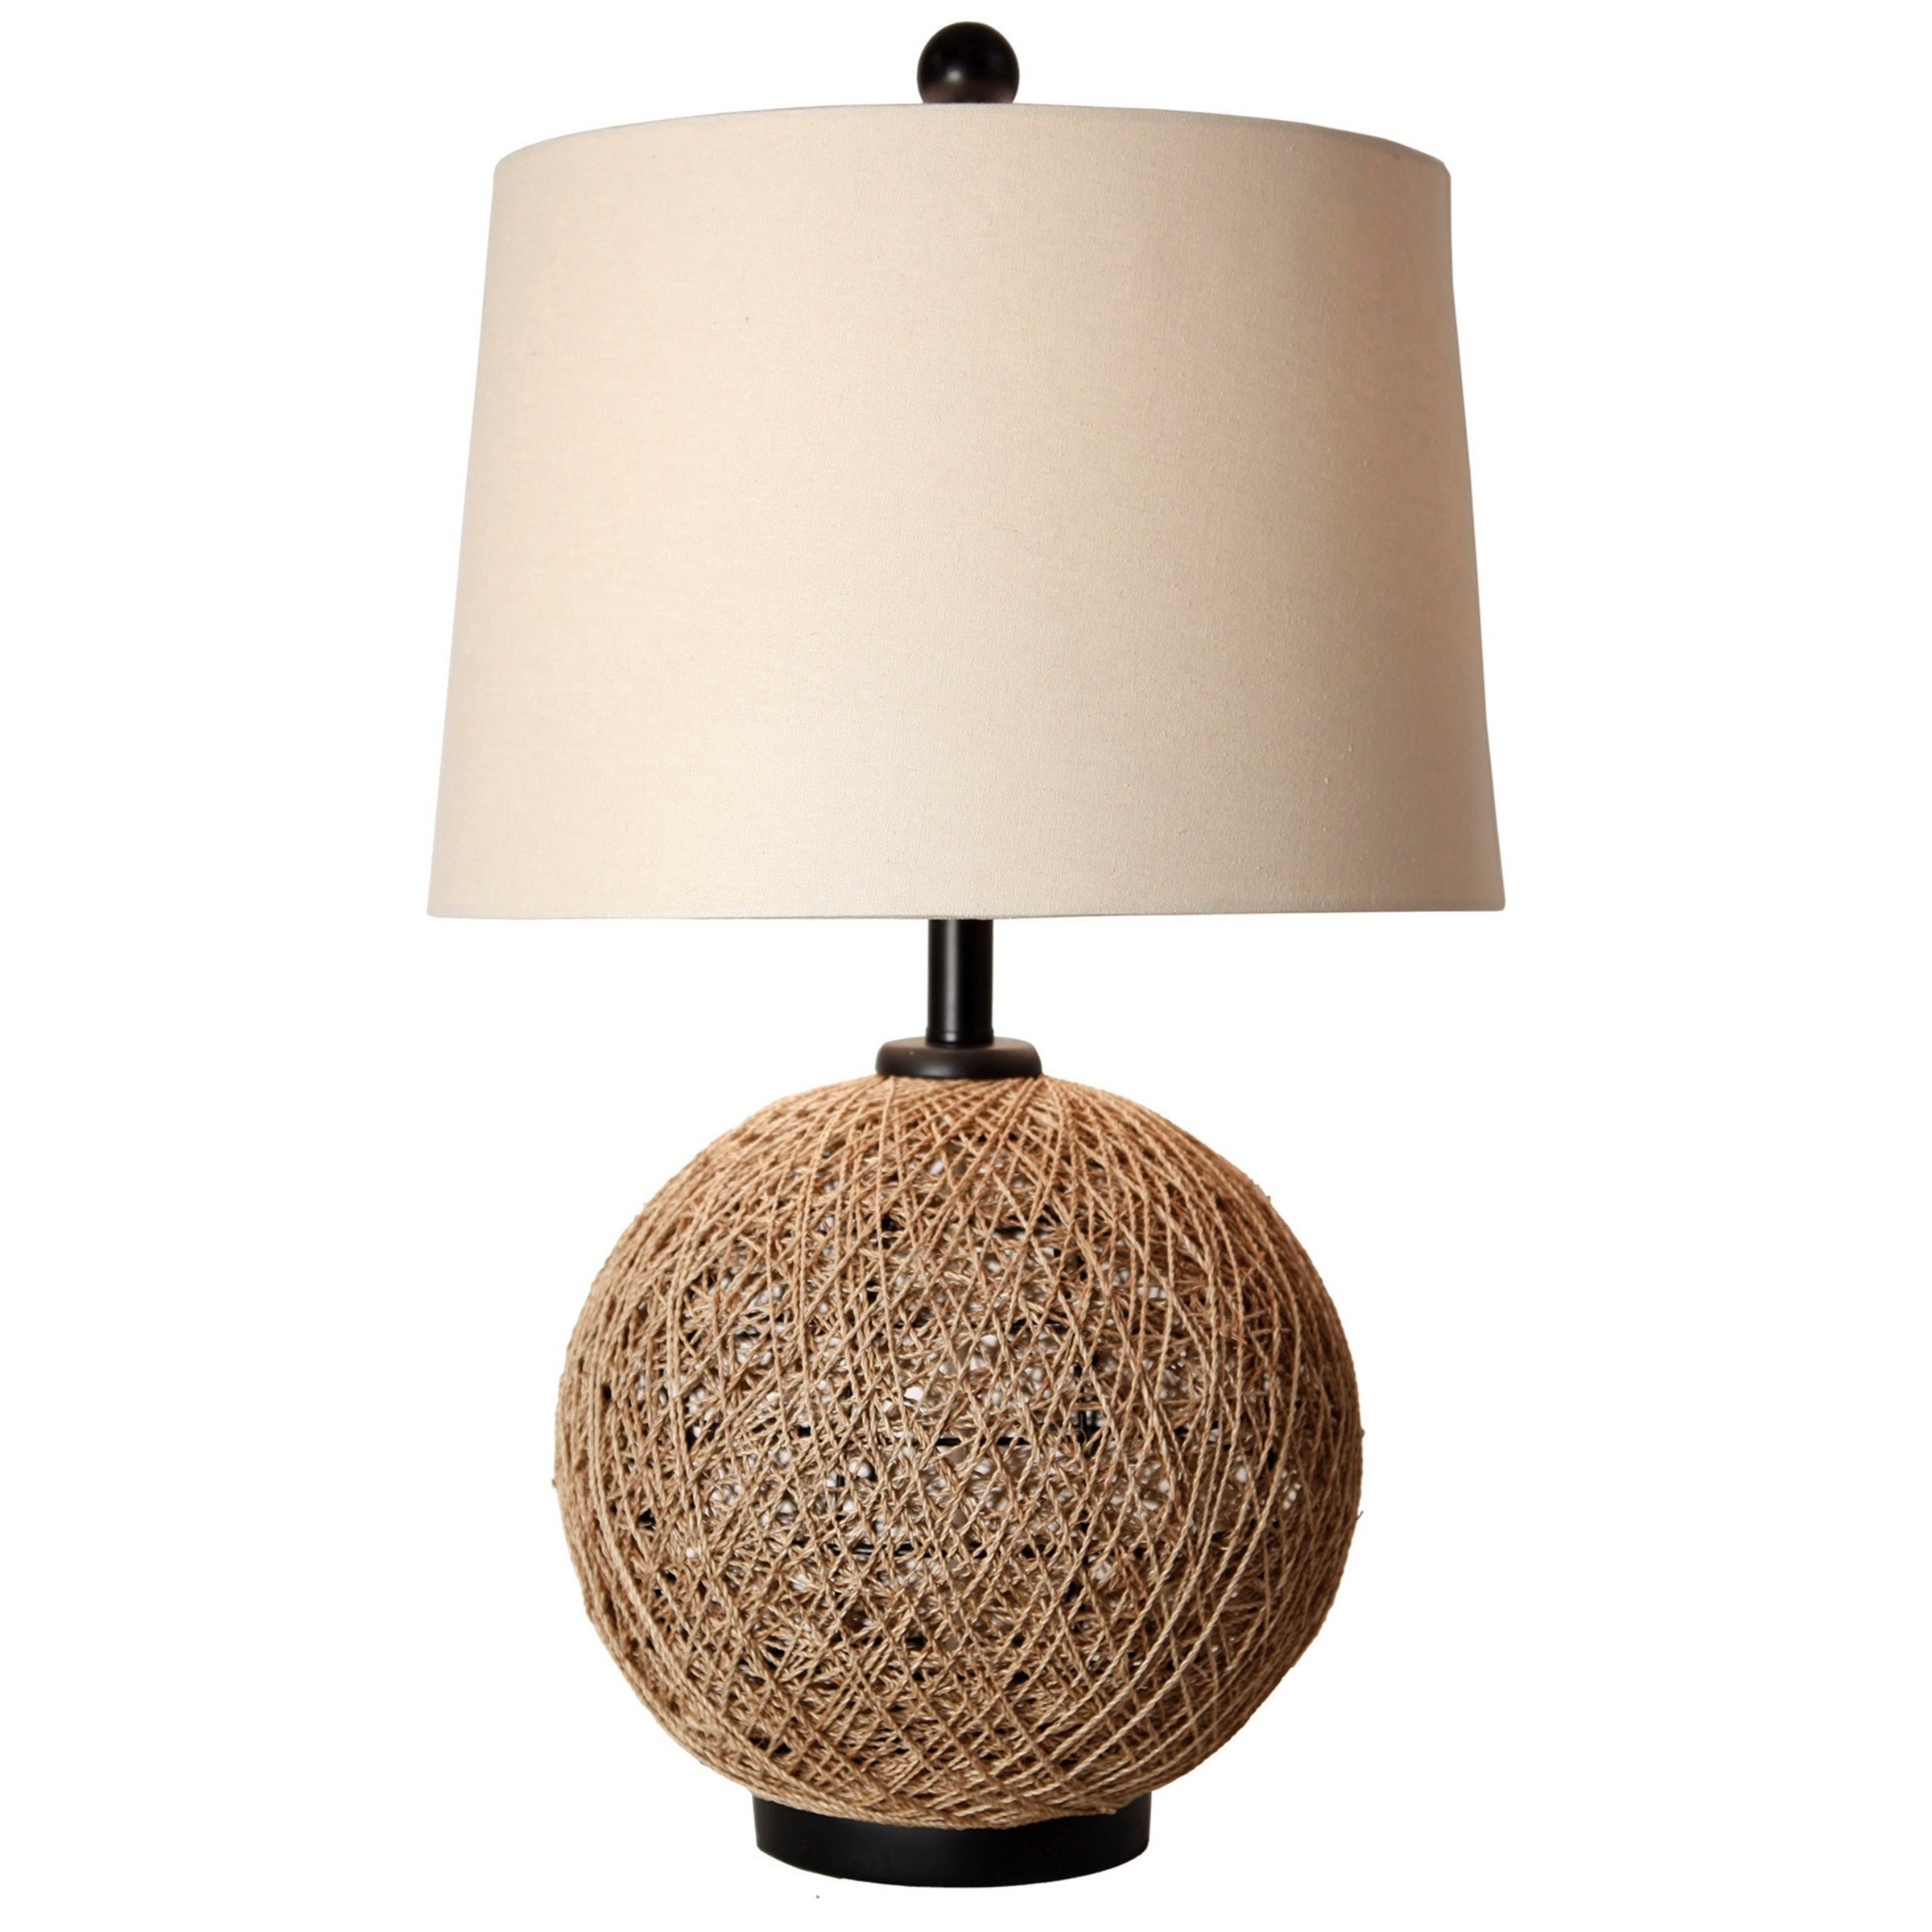 StyleCraft Lamps CJT1041 Woven Natural Rattan Ball Table Lamp | Household  Furniture | Table Lamps